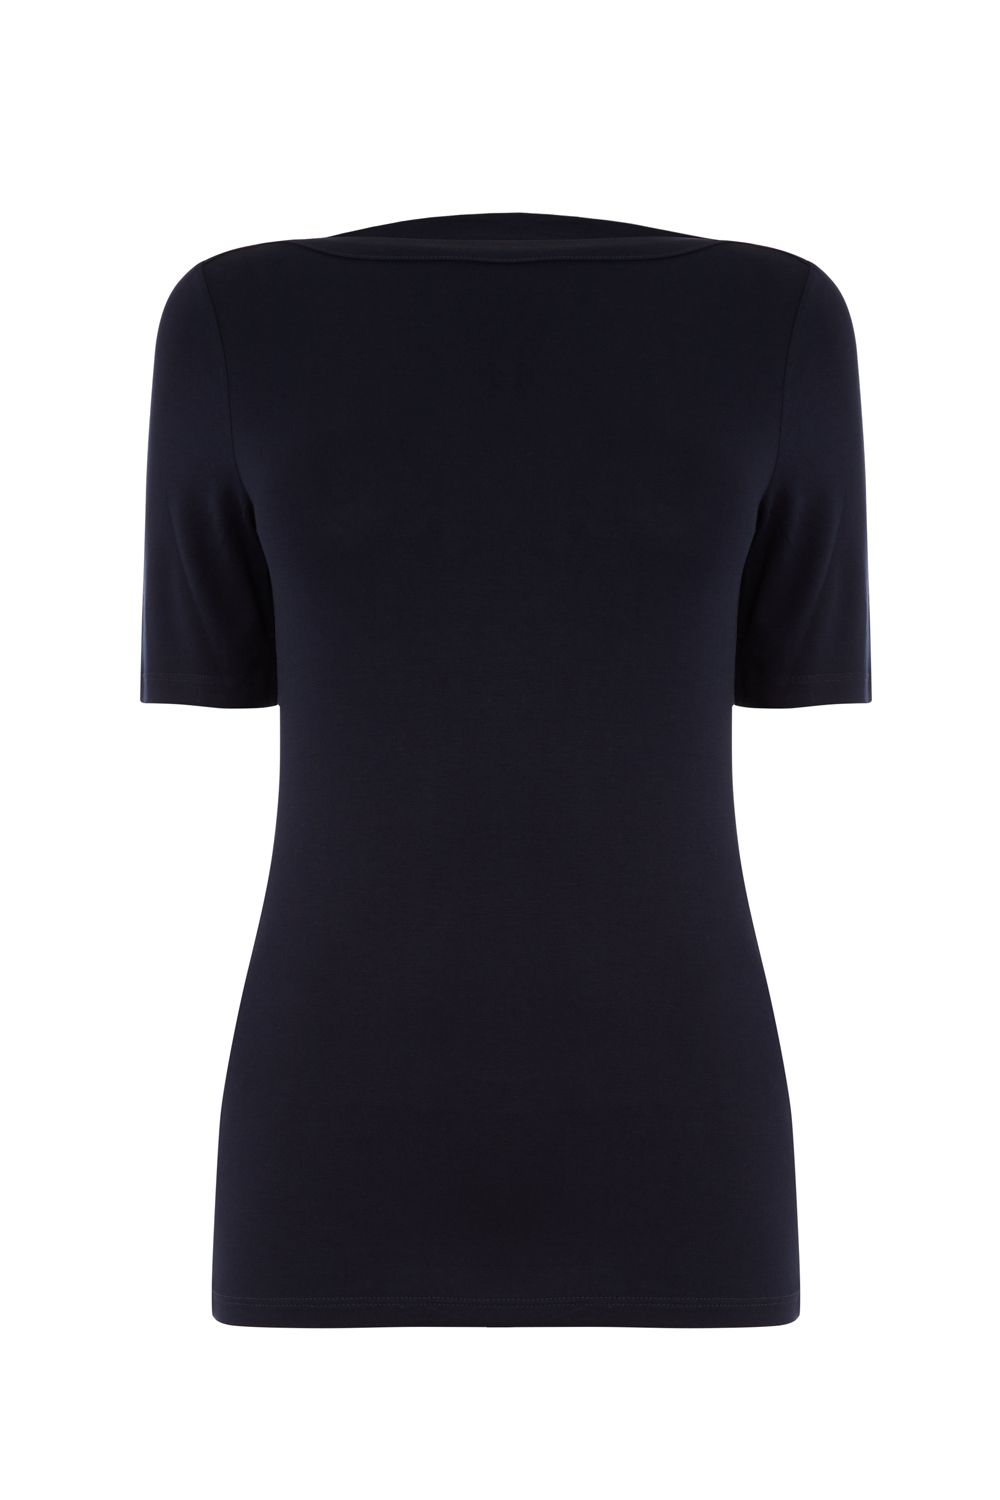 Oasis Short Sleeve Boatneck Top, Blue